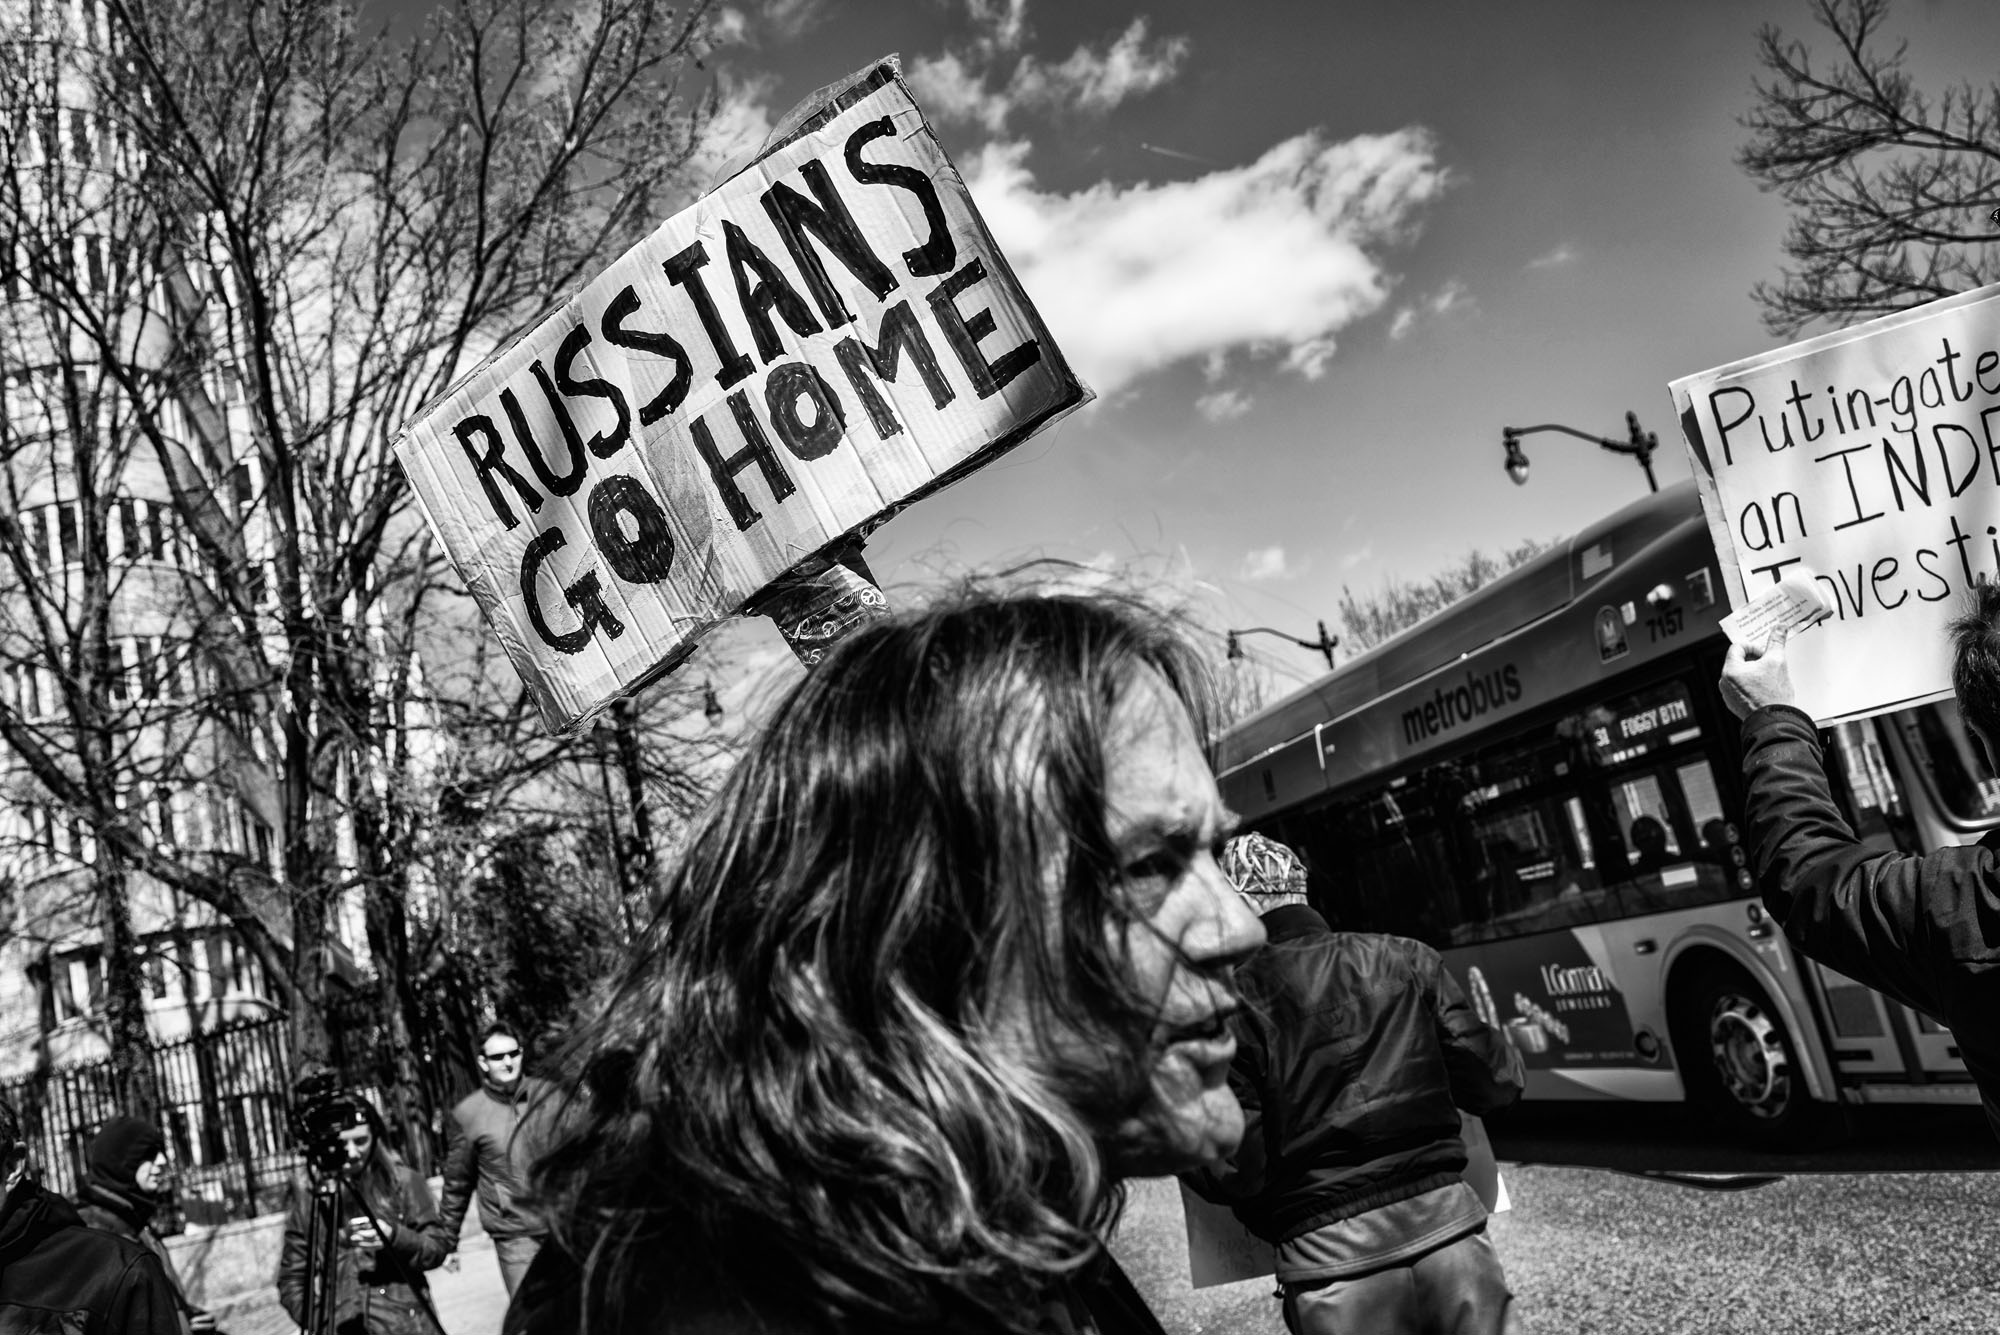 Protesters demonstrate in front of the Russian Embassy, on March 4, 2017.